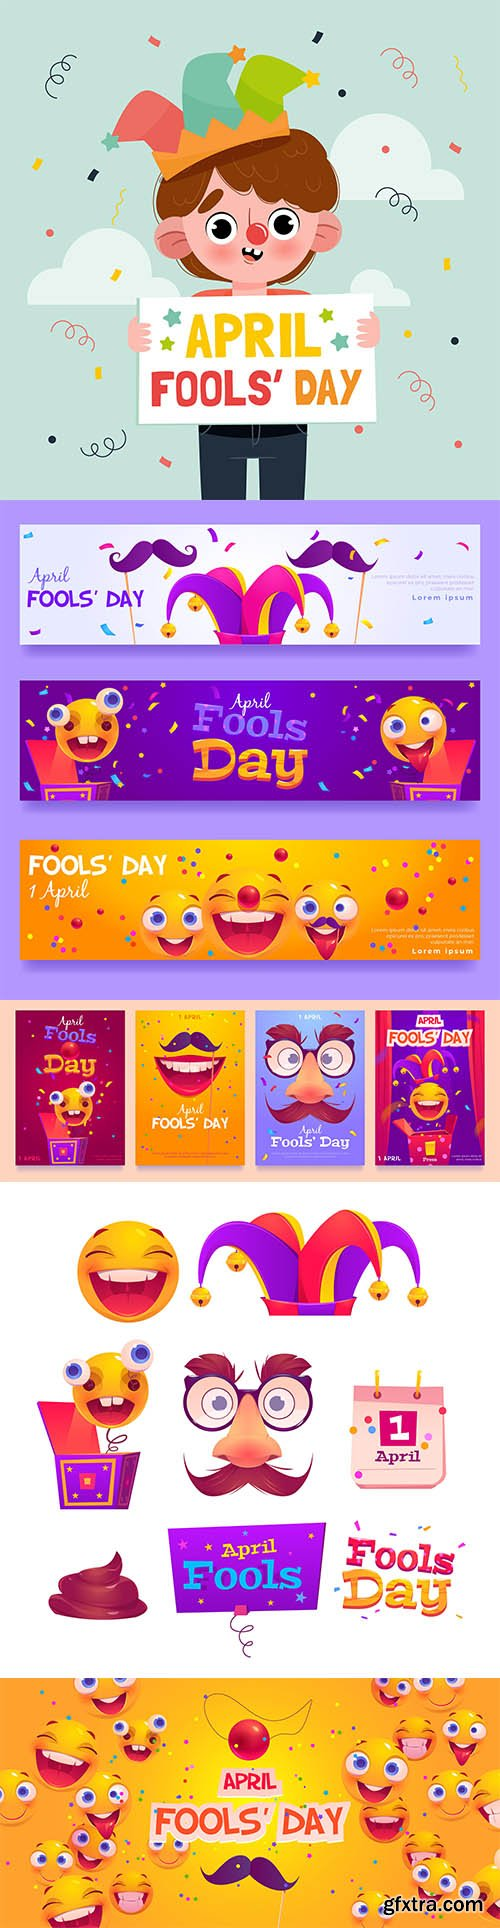 Hand-drawn april fools day vector collection